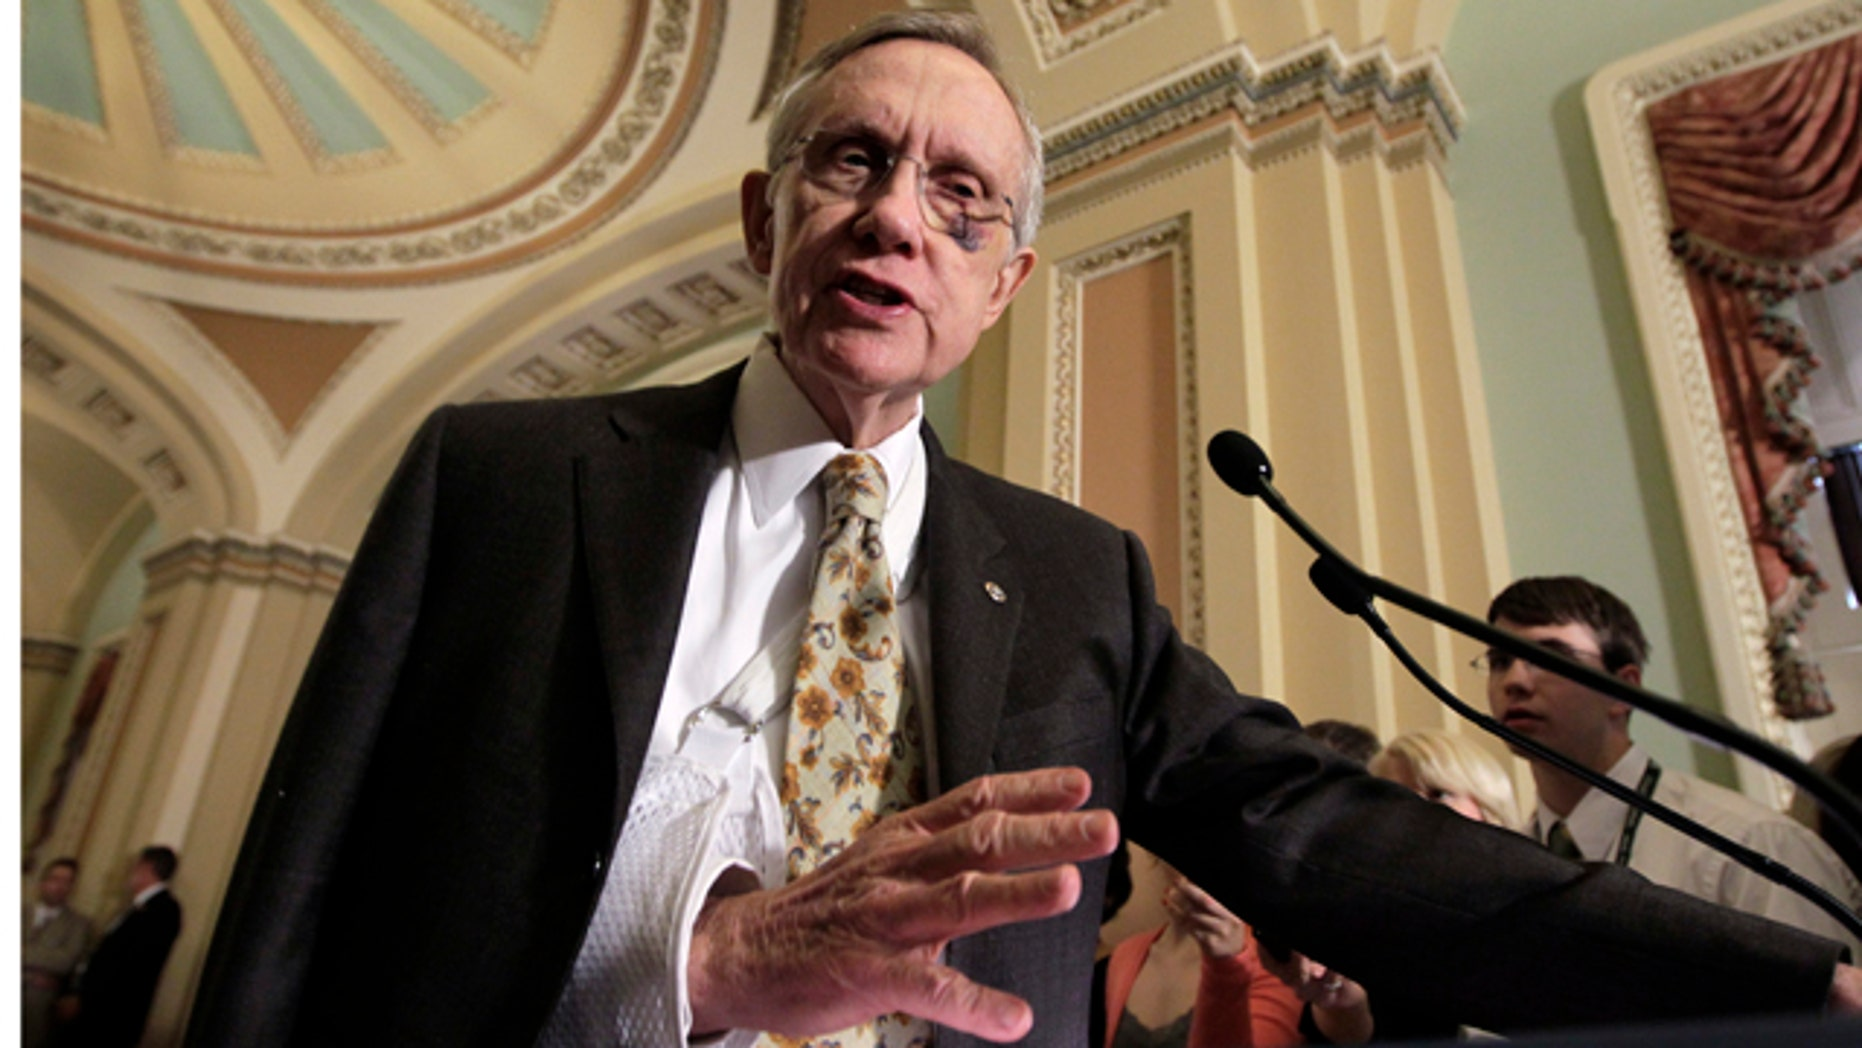 May 17: Senate Majority Leader Harry Reid, D-Nev., speaks to reporters as the Senate votes to continue tax breaks for oil companies, at the Capitol in Washington.